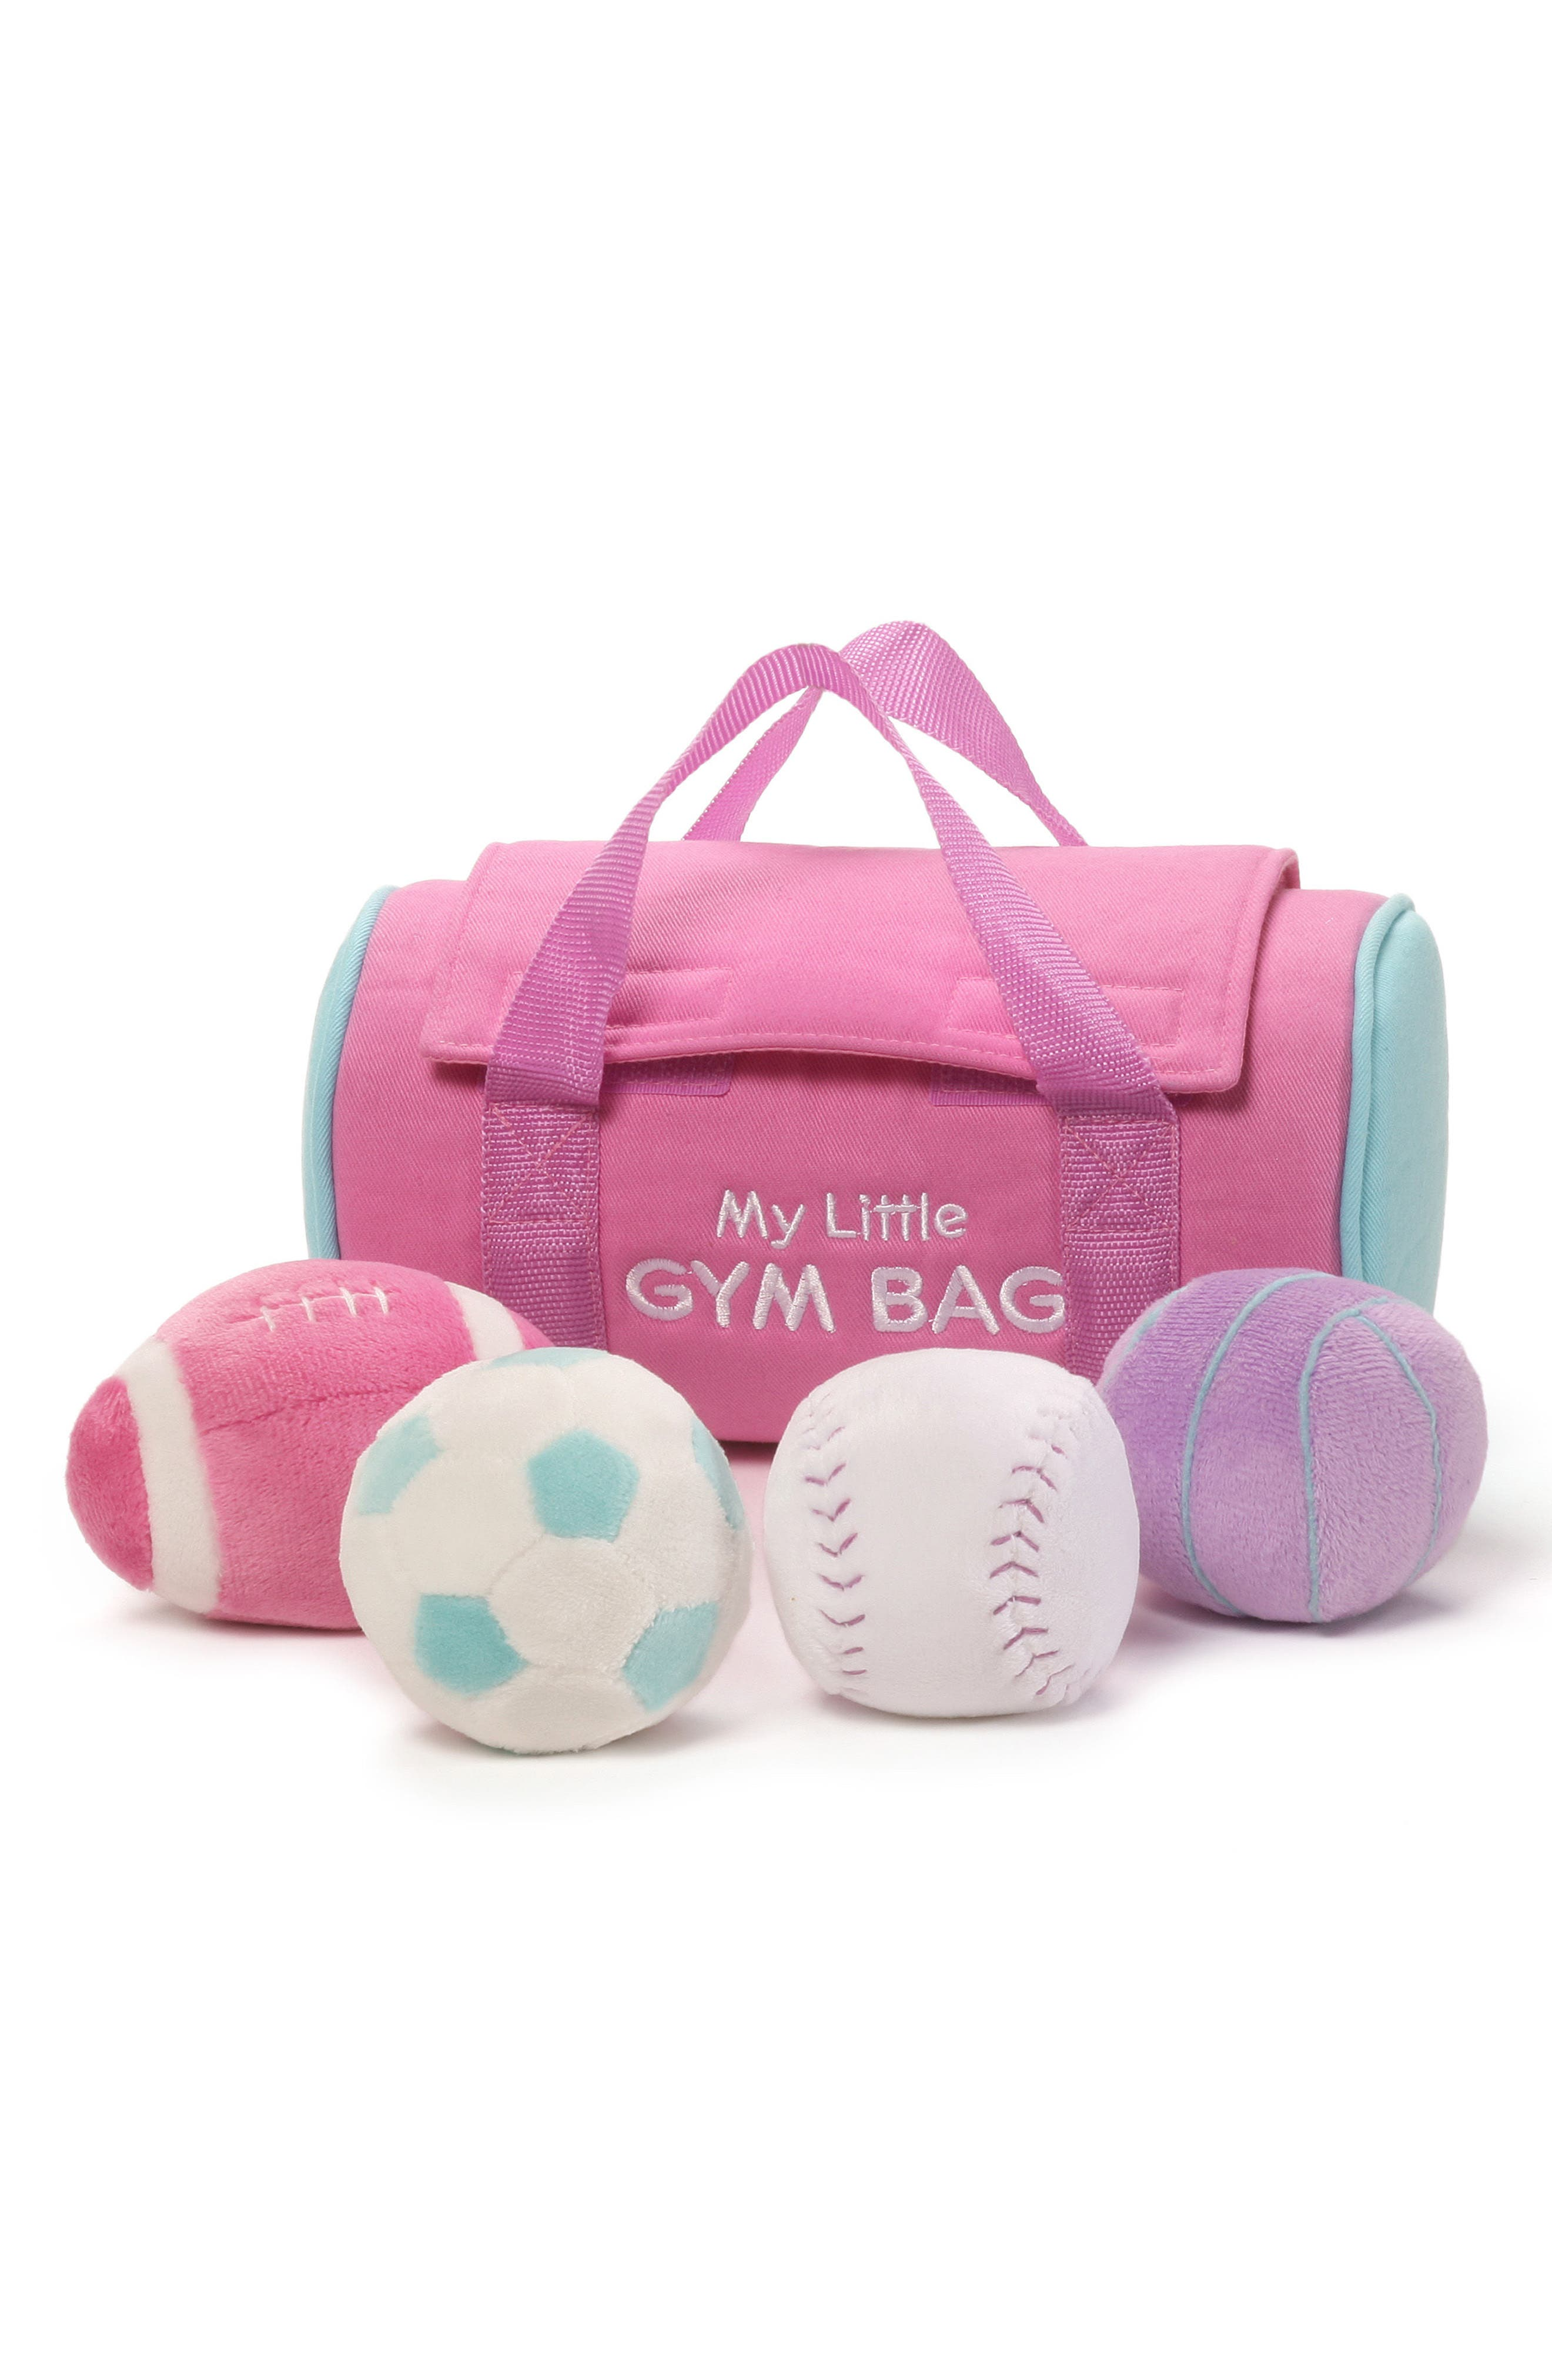 My Little Gym Bag Play Set,                             Main thumbnail 1, color,                             PINK